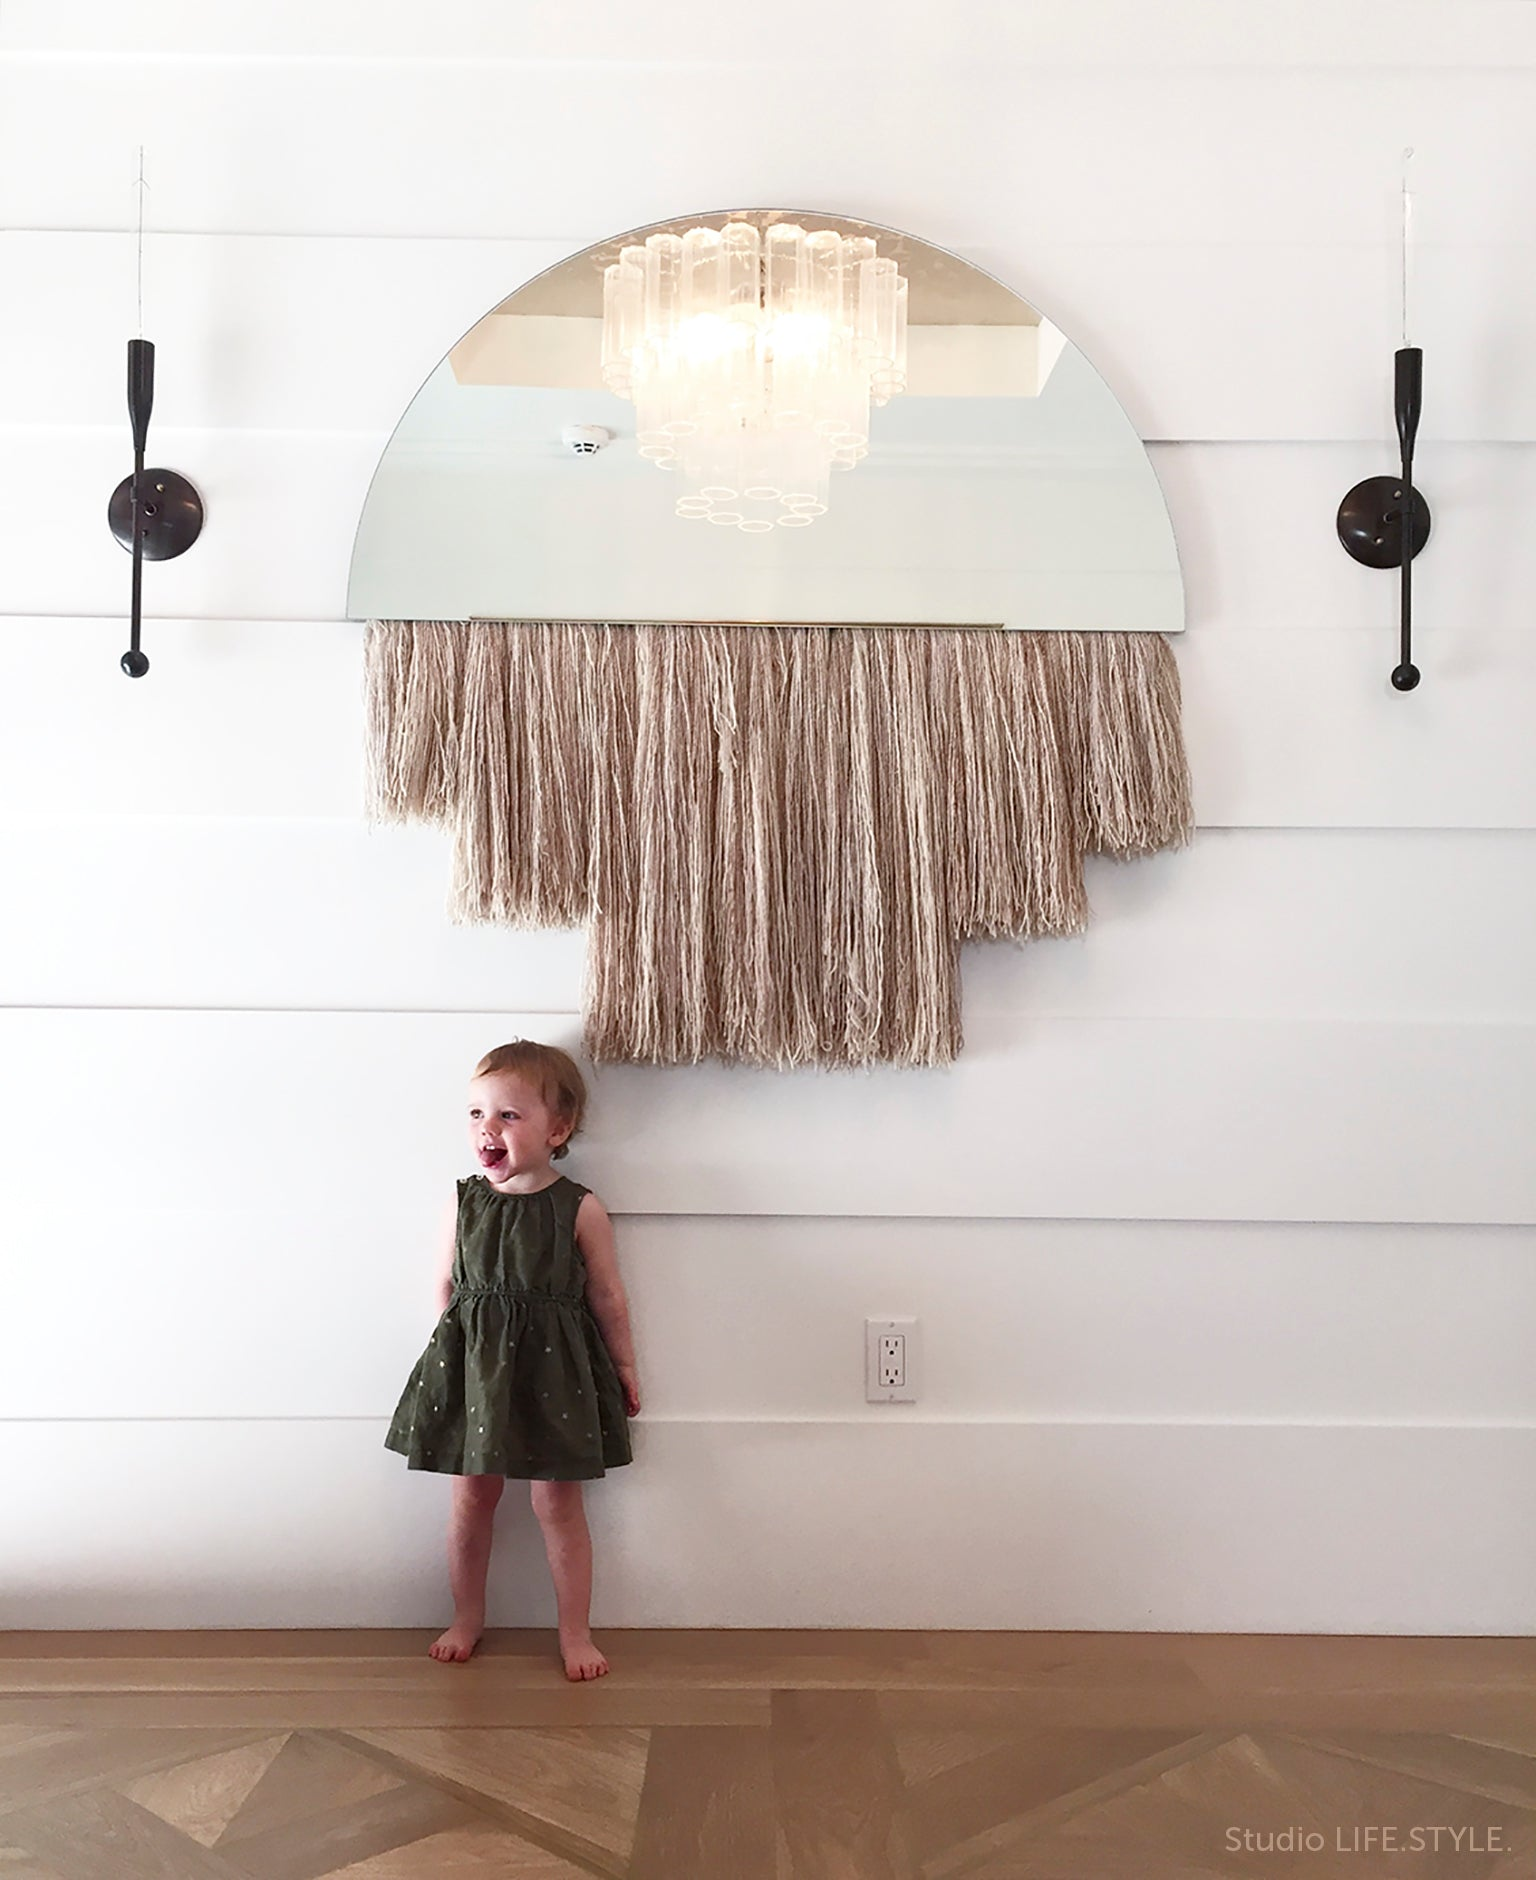 Two Sorenthia linear sconces on either side of a mirror by Ben and Aja Blanc and girl standing in a space designed by Studio LIFE.STYLE.